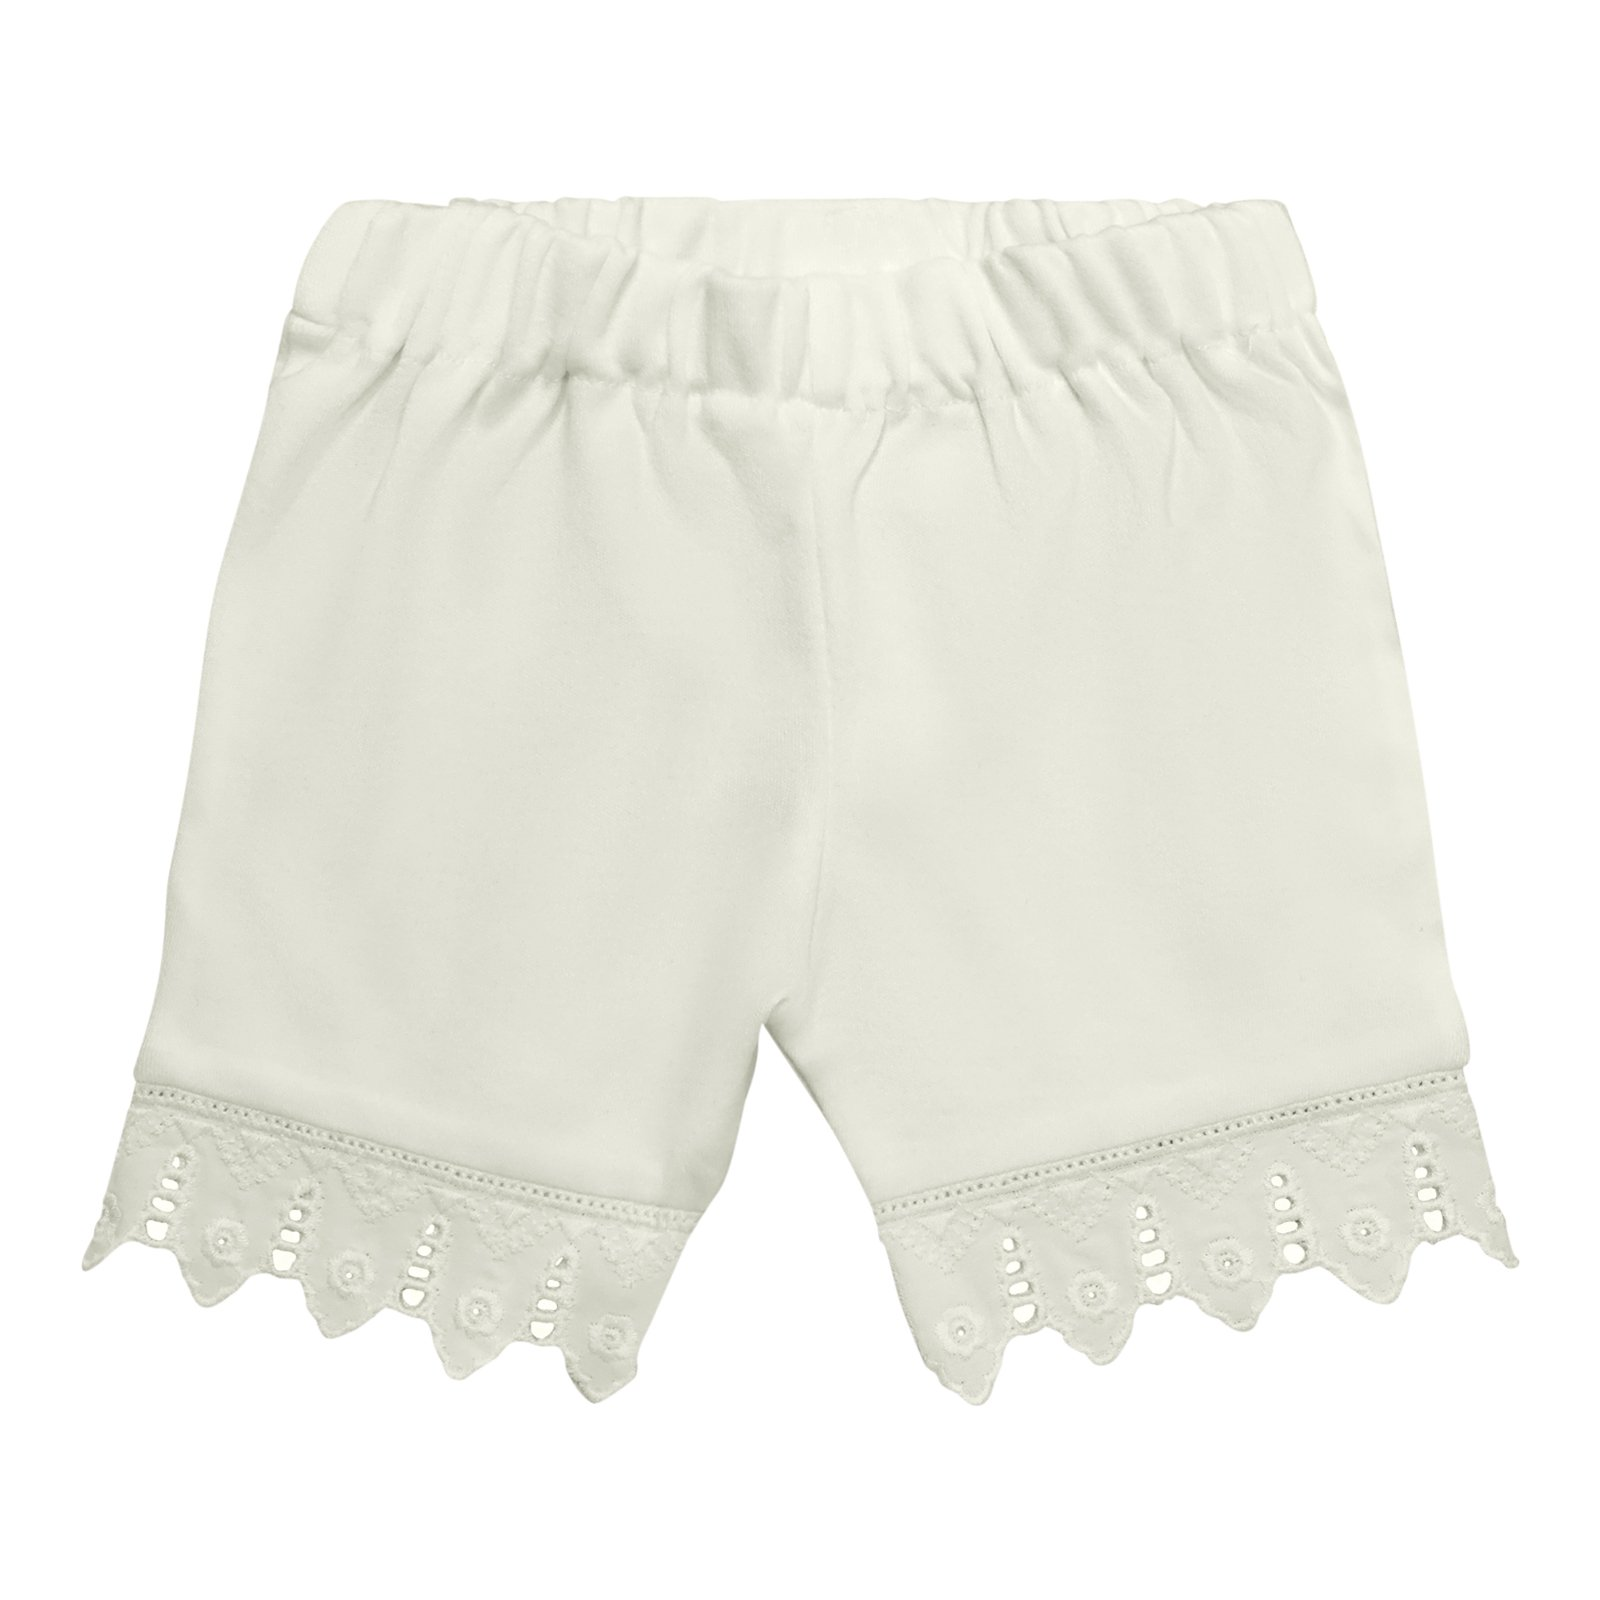 Victorian Organics Baby Girl Sailor Set 4 Piece Organic Cotton Knit and Eyelet Lace Trim Jacket Hat Dress and Bloomers (NB 0-3 months) by Victorian Organics (Image #6)